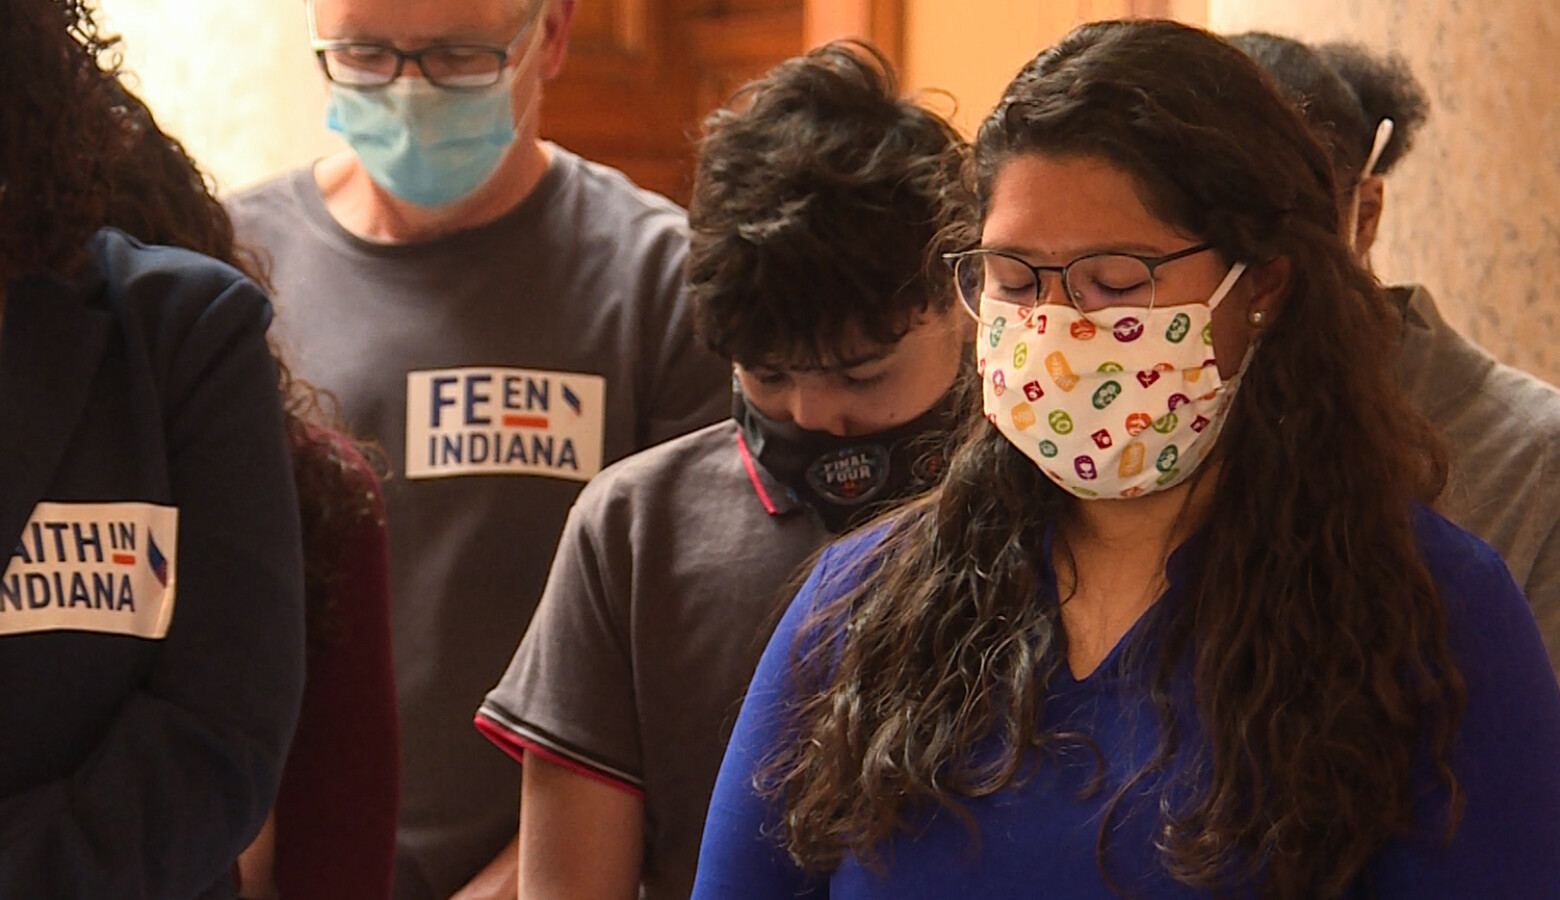 Members of Faith In Indiana gathered at the Statehouse Tuesday to advocate for gun violence intervention and a summer study committee for driving cards. (Lauren Chapman/IPB News)